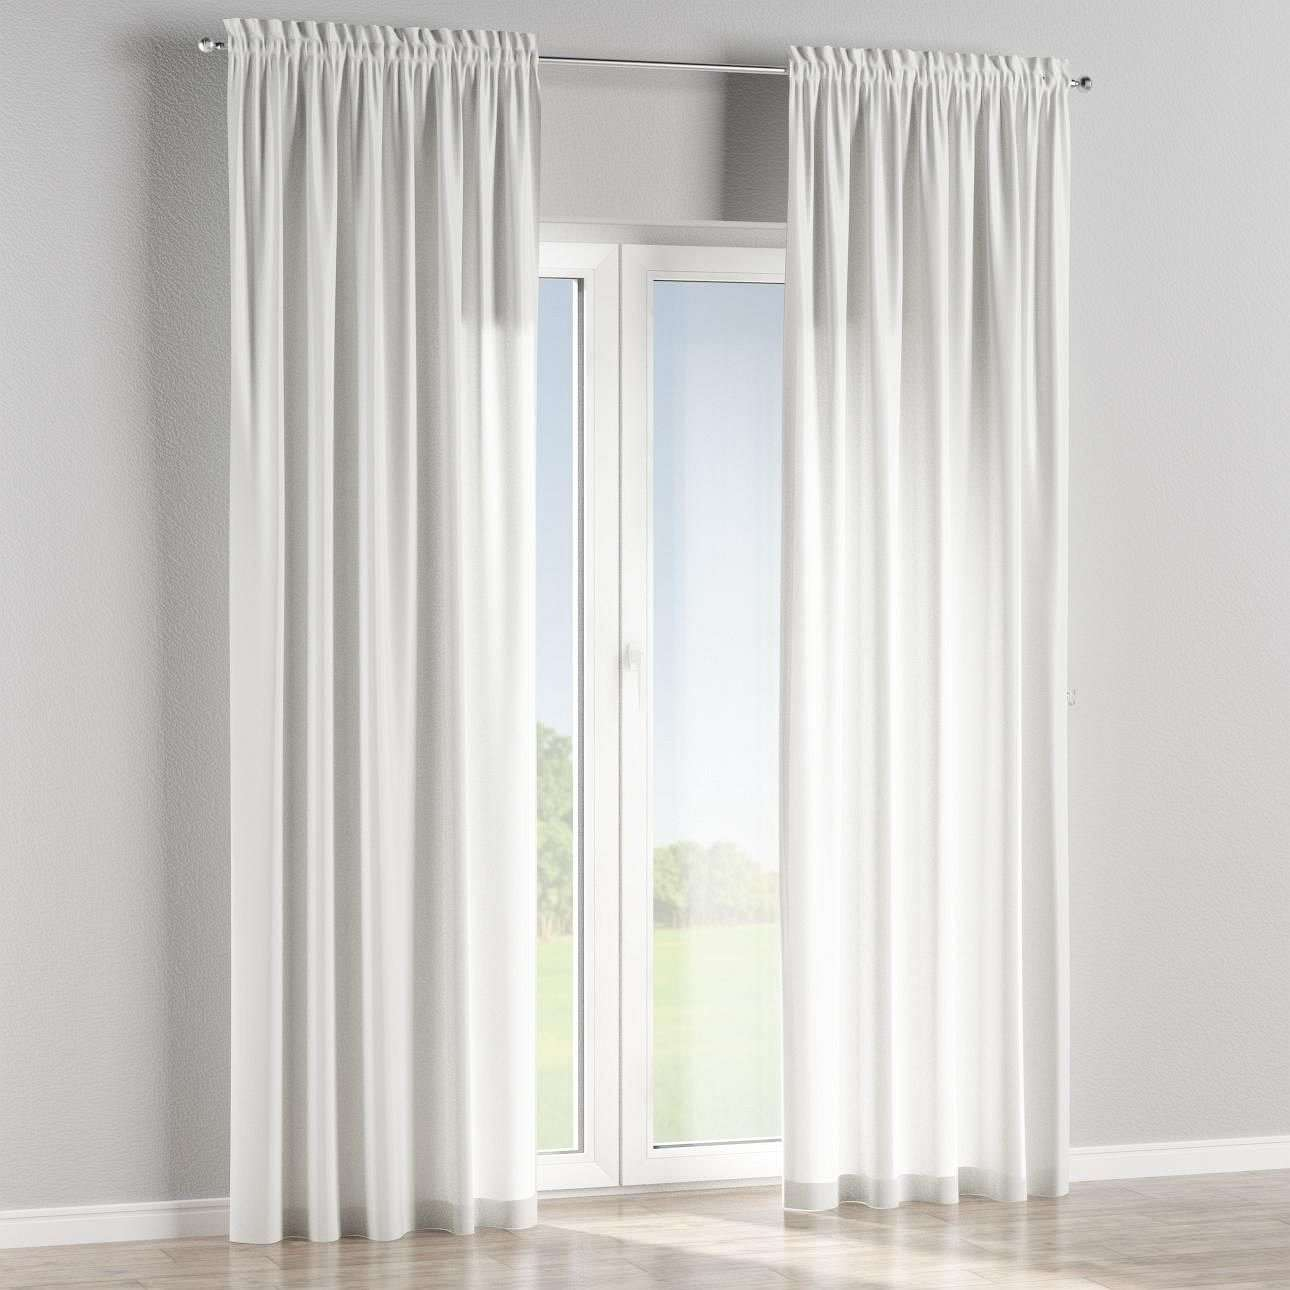 Slot and frill curtains in collection Cardiff, fabric: 136-31